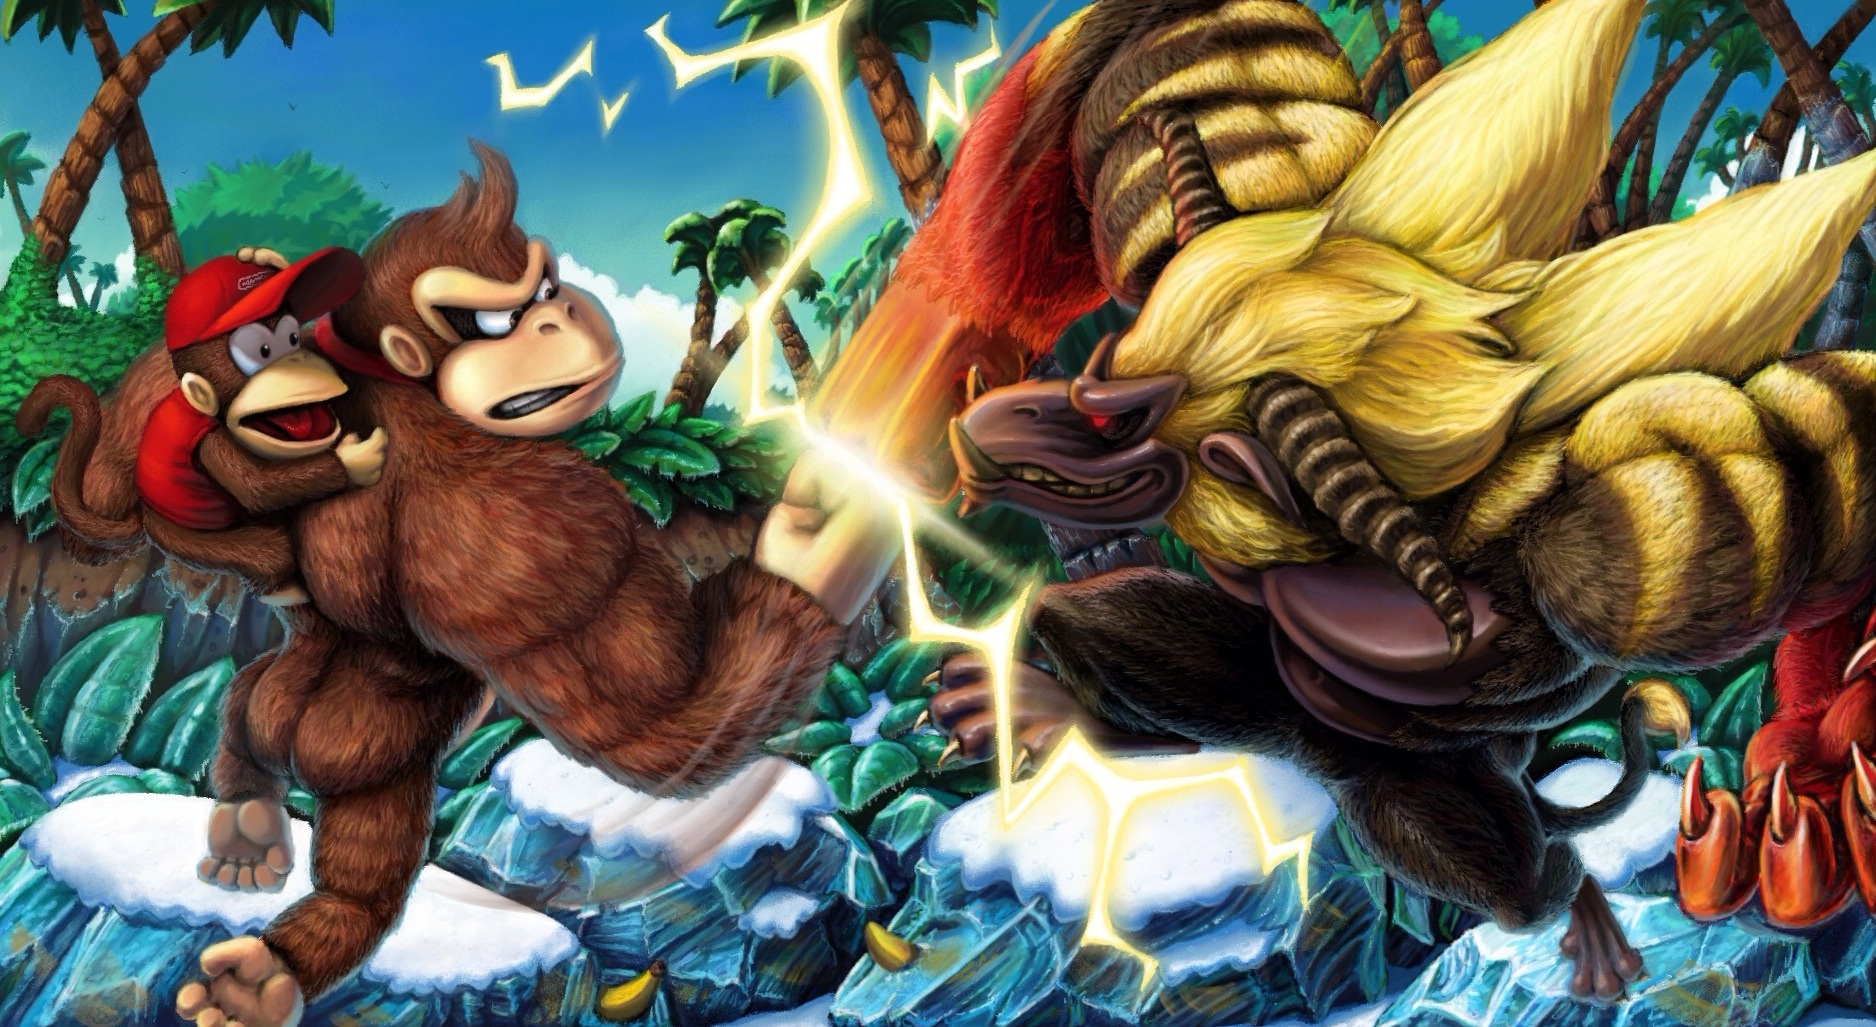 donkey_kong_vs_the_rajang_king_by_wyvern